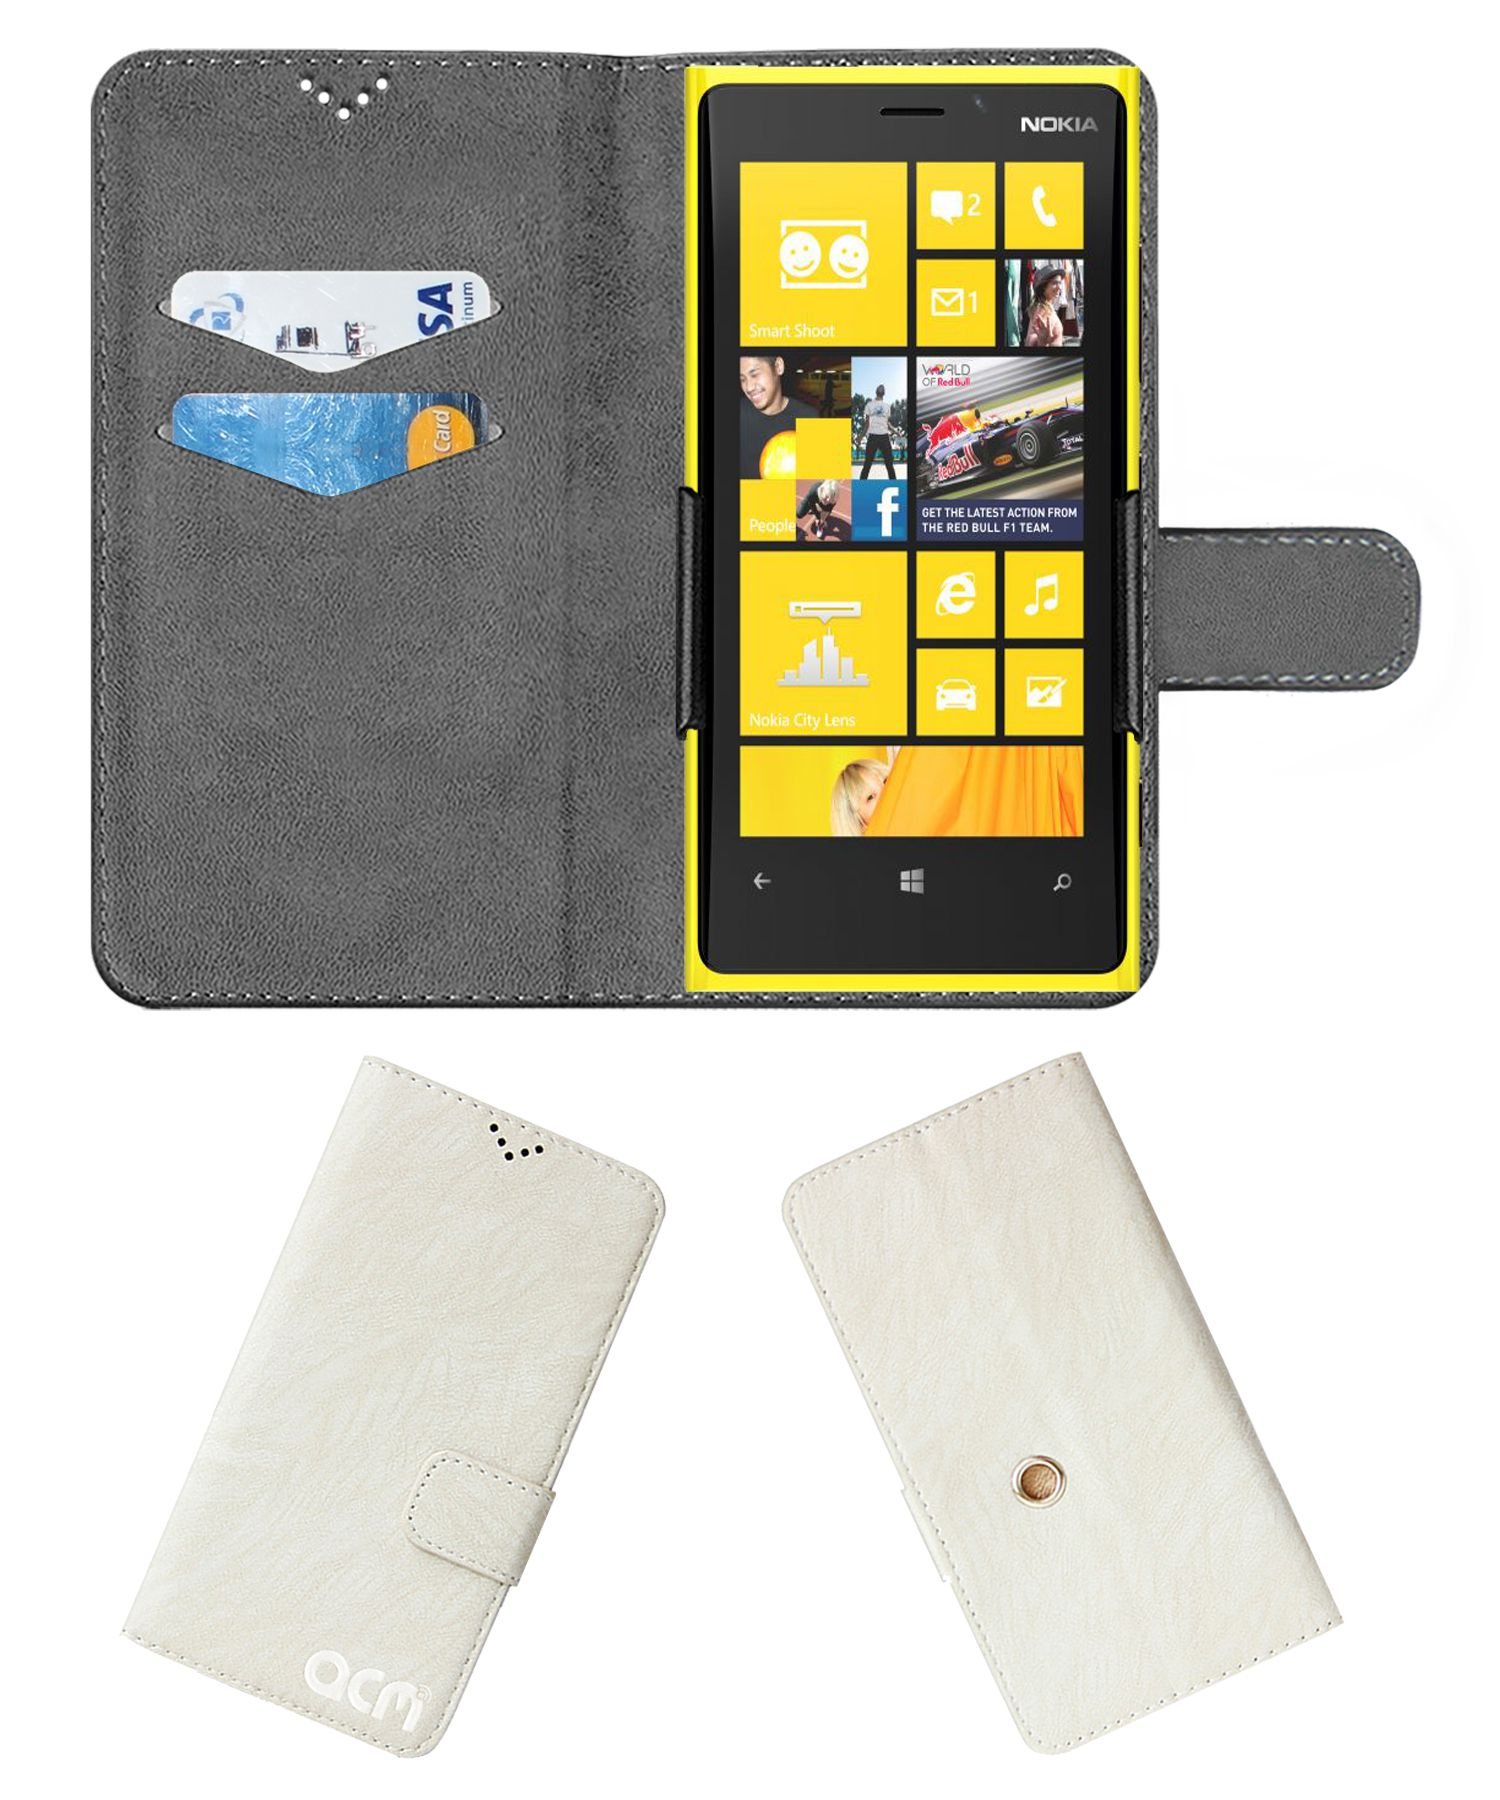 Nokia Lumia 920 Flip Cover by ACM - White Clip holder to hold your mobile securely